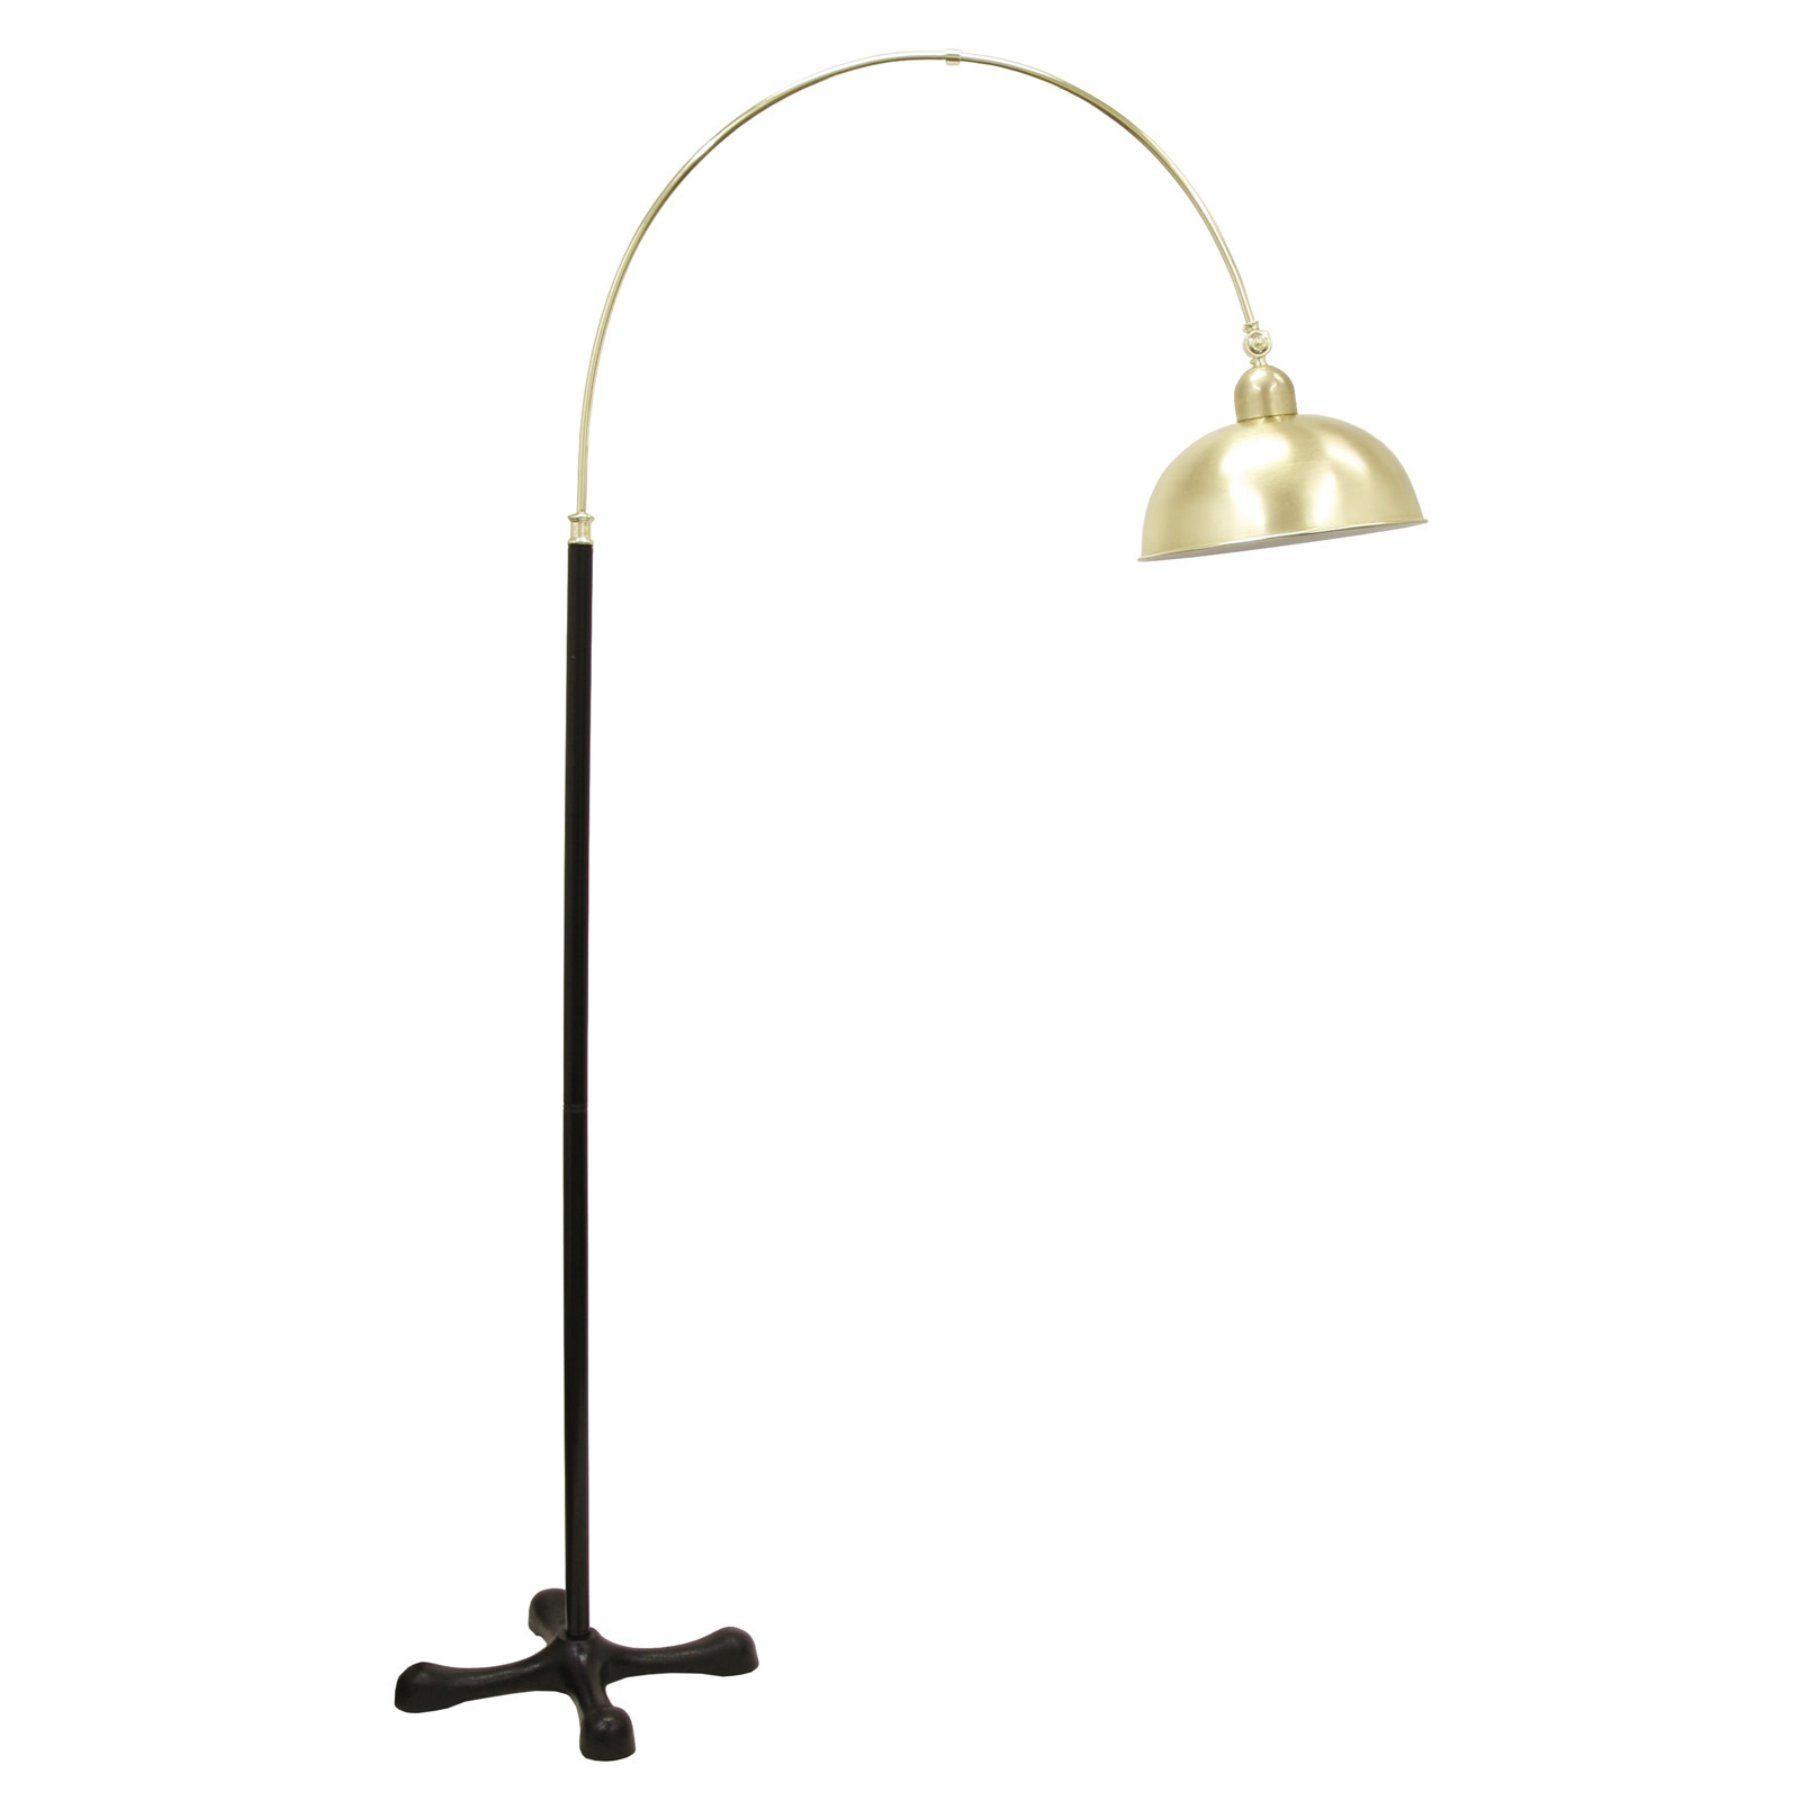 Decor Therapy Gage Pl3901 Floor Lamp Decor Therapy Brass Floor